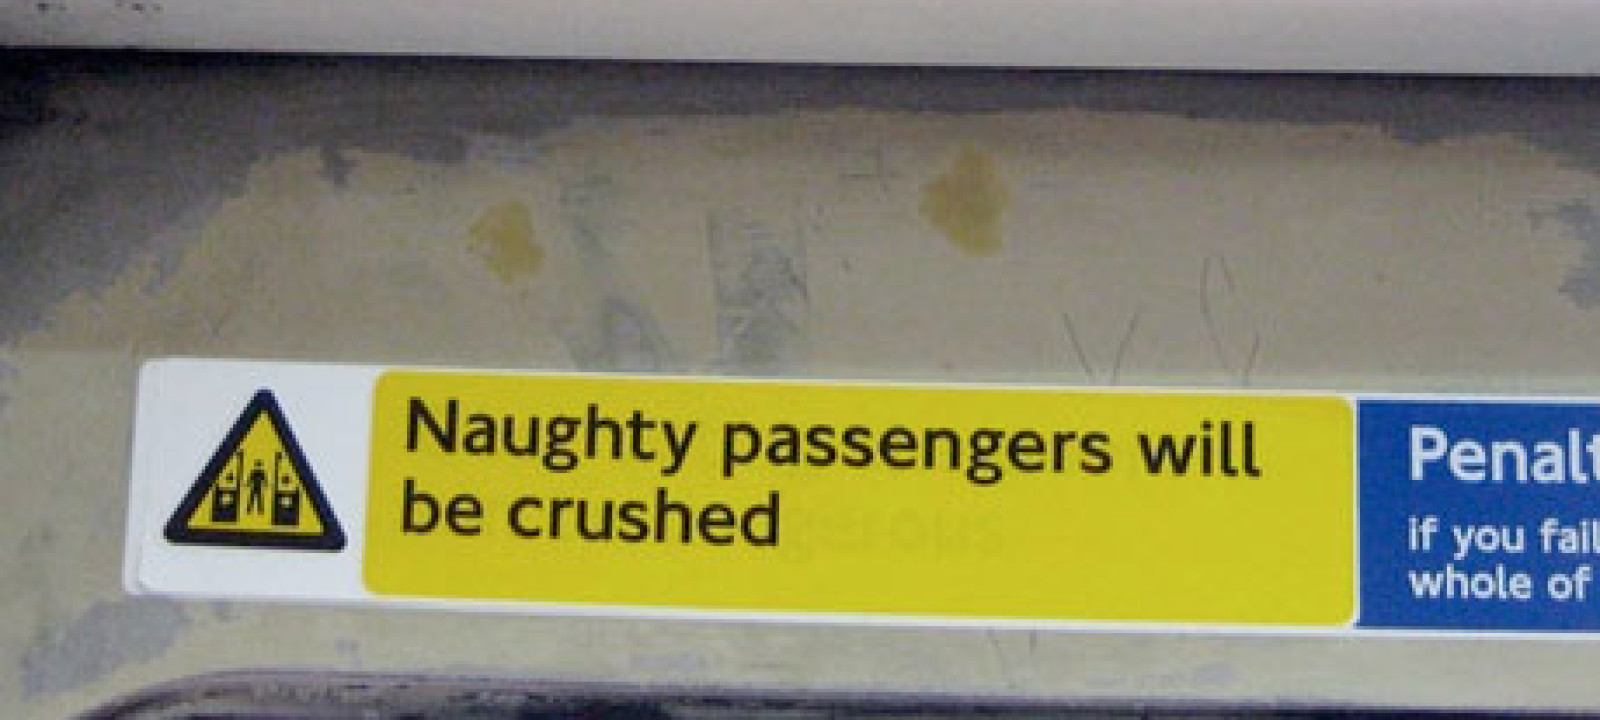 Naughty passengers will be crushed